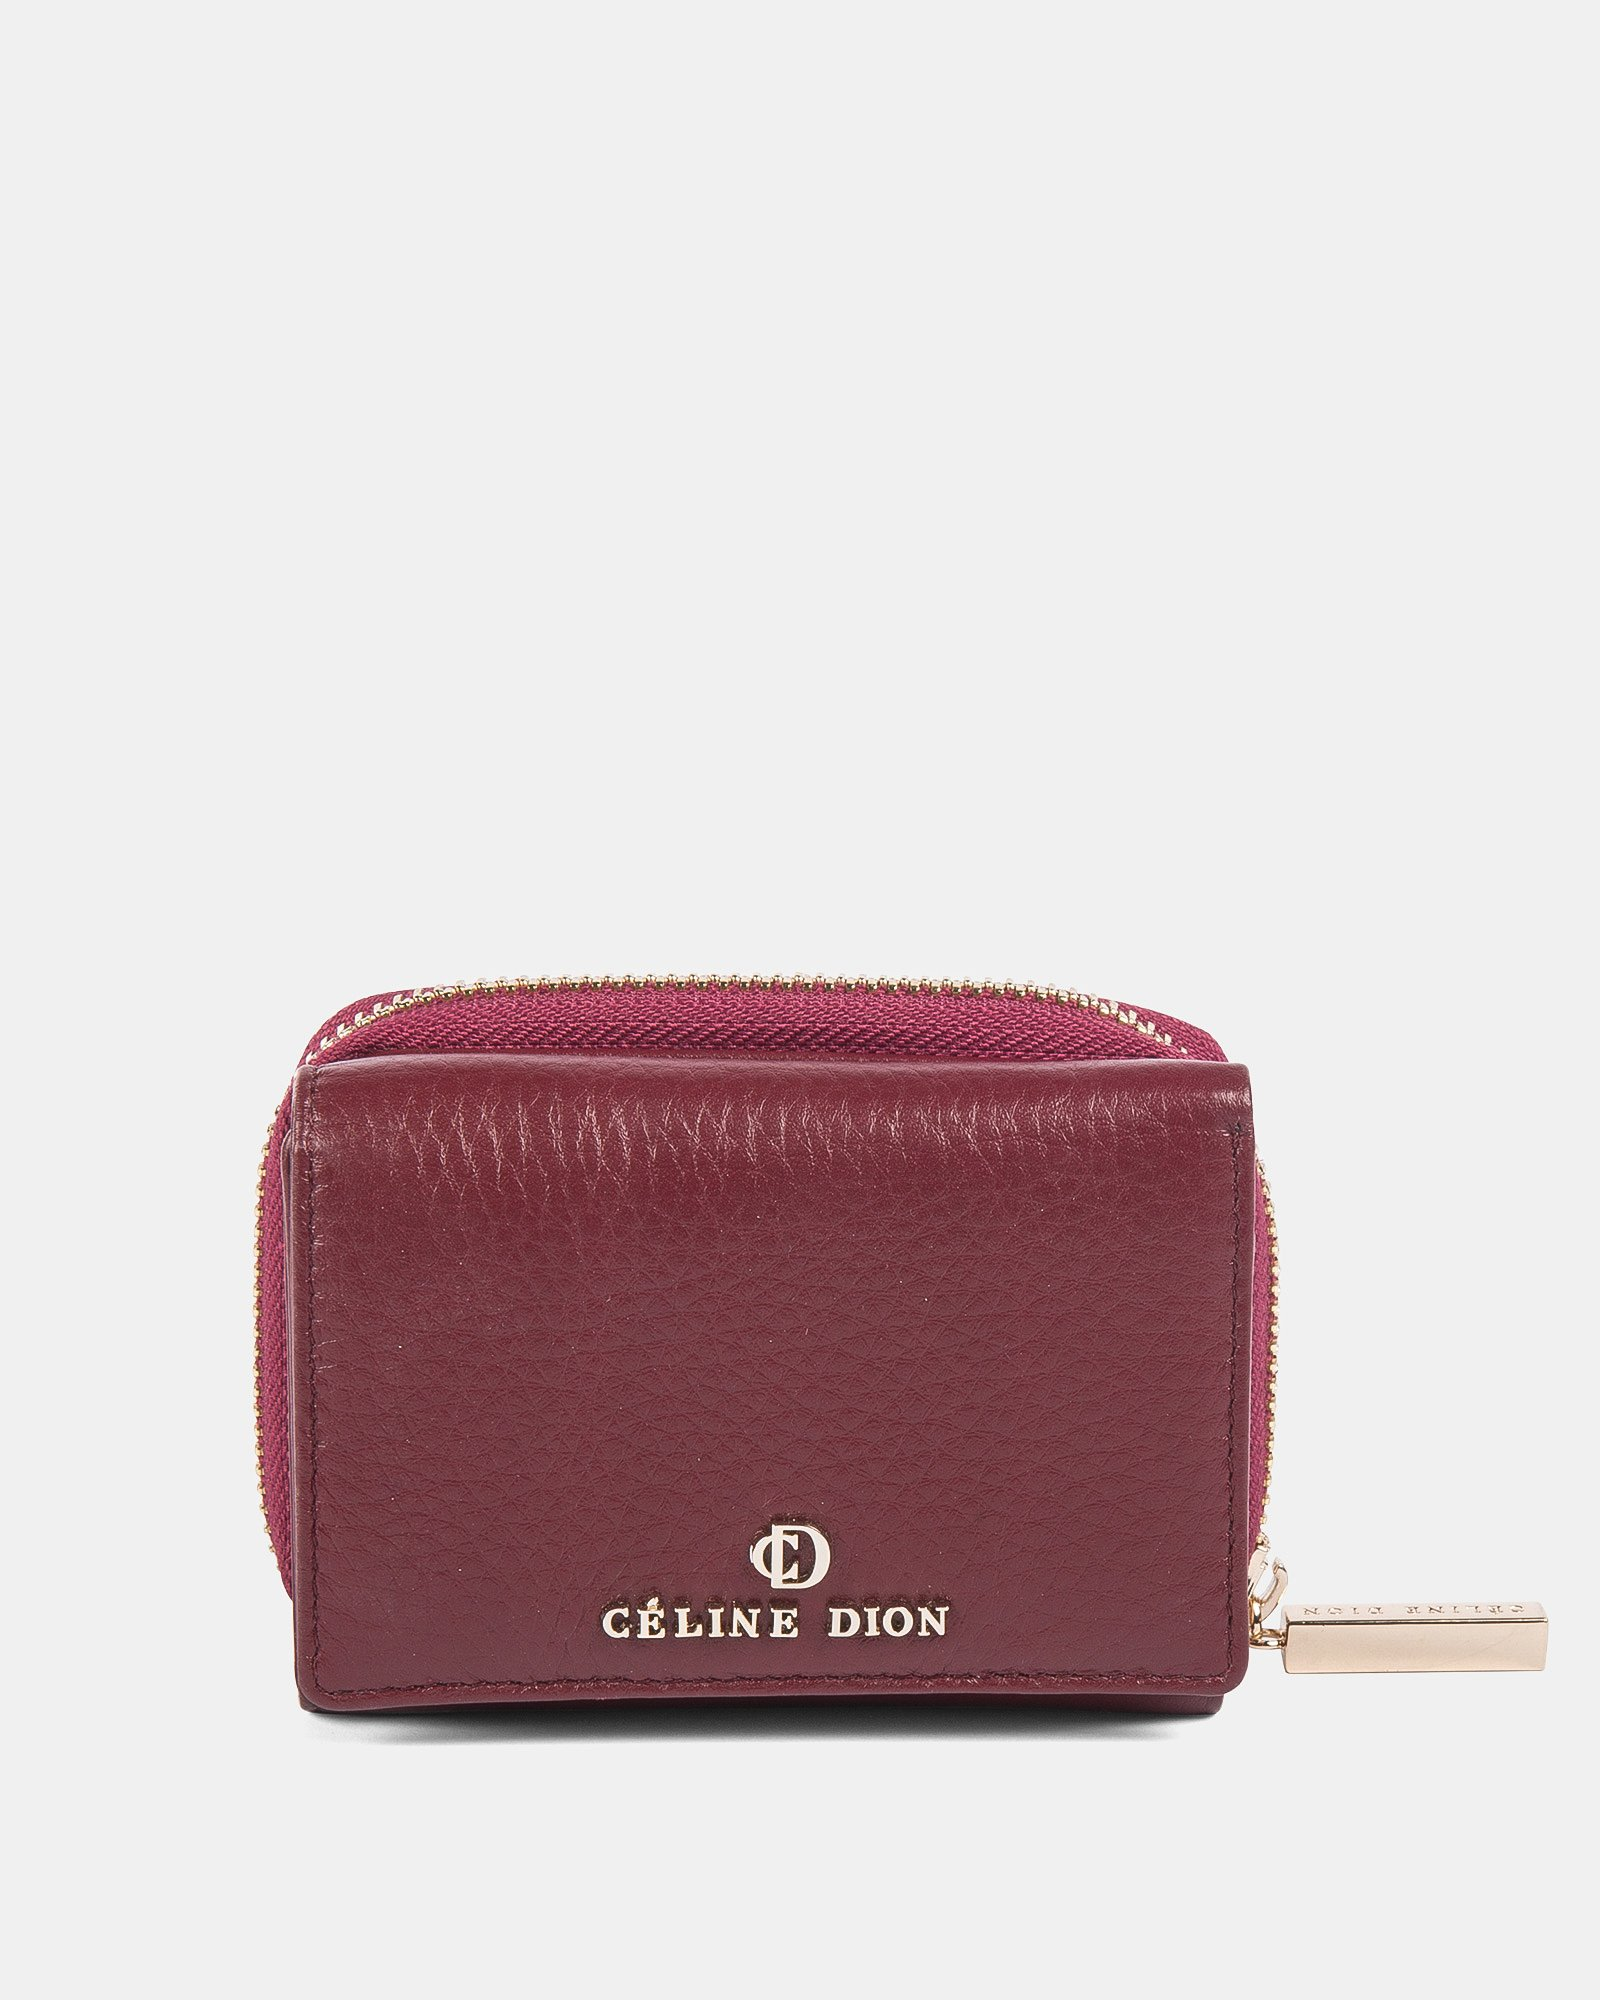 ADAGIO - Small leather wallet with pocket &  zipper closure - DARK RED - Céline Dion - Zoom